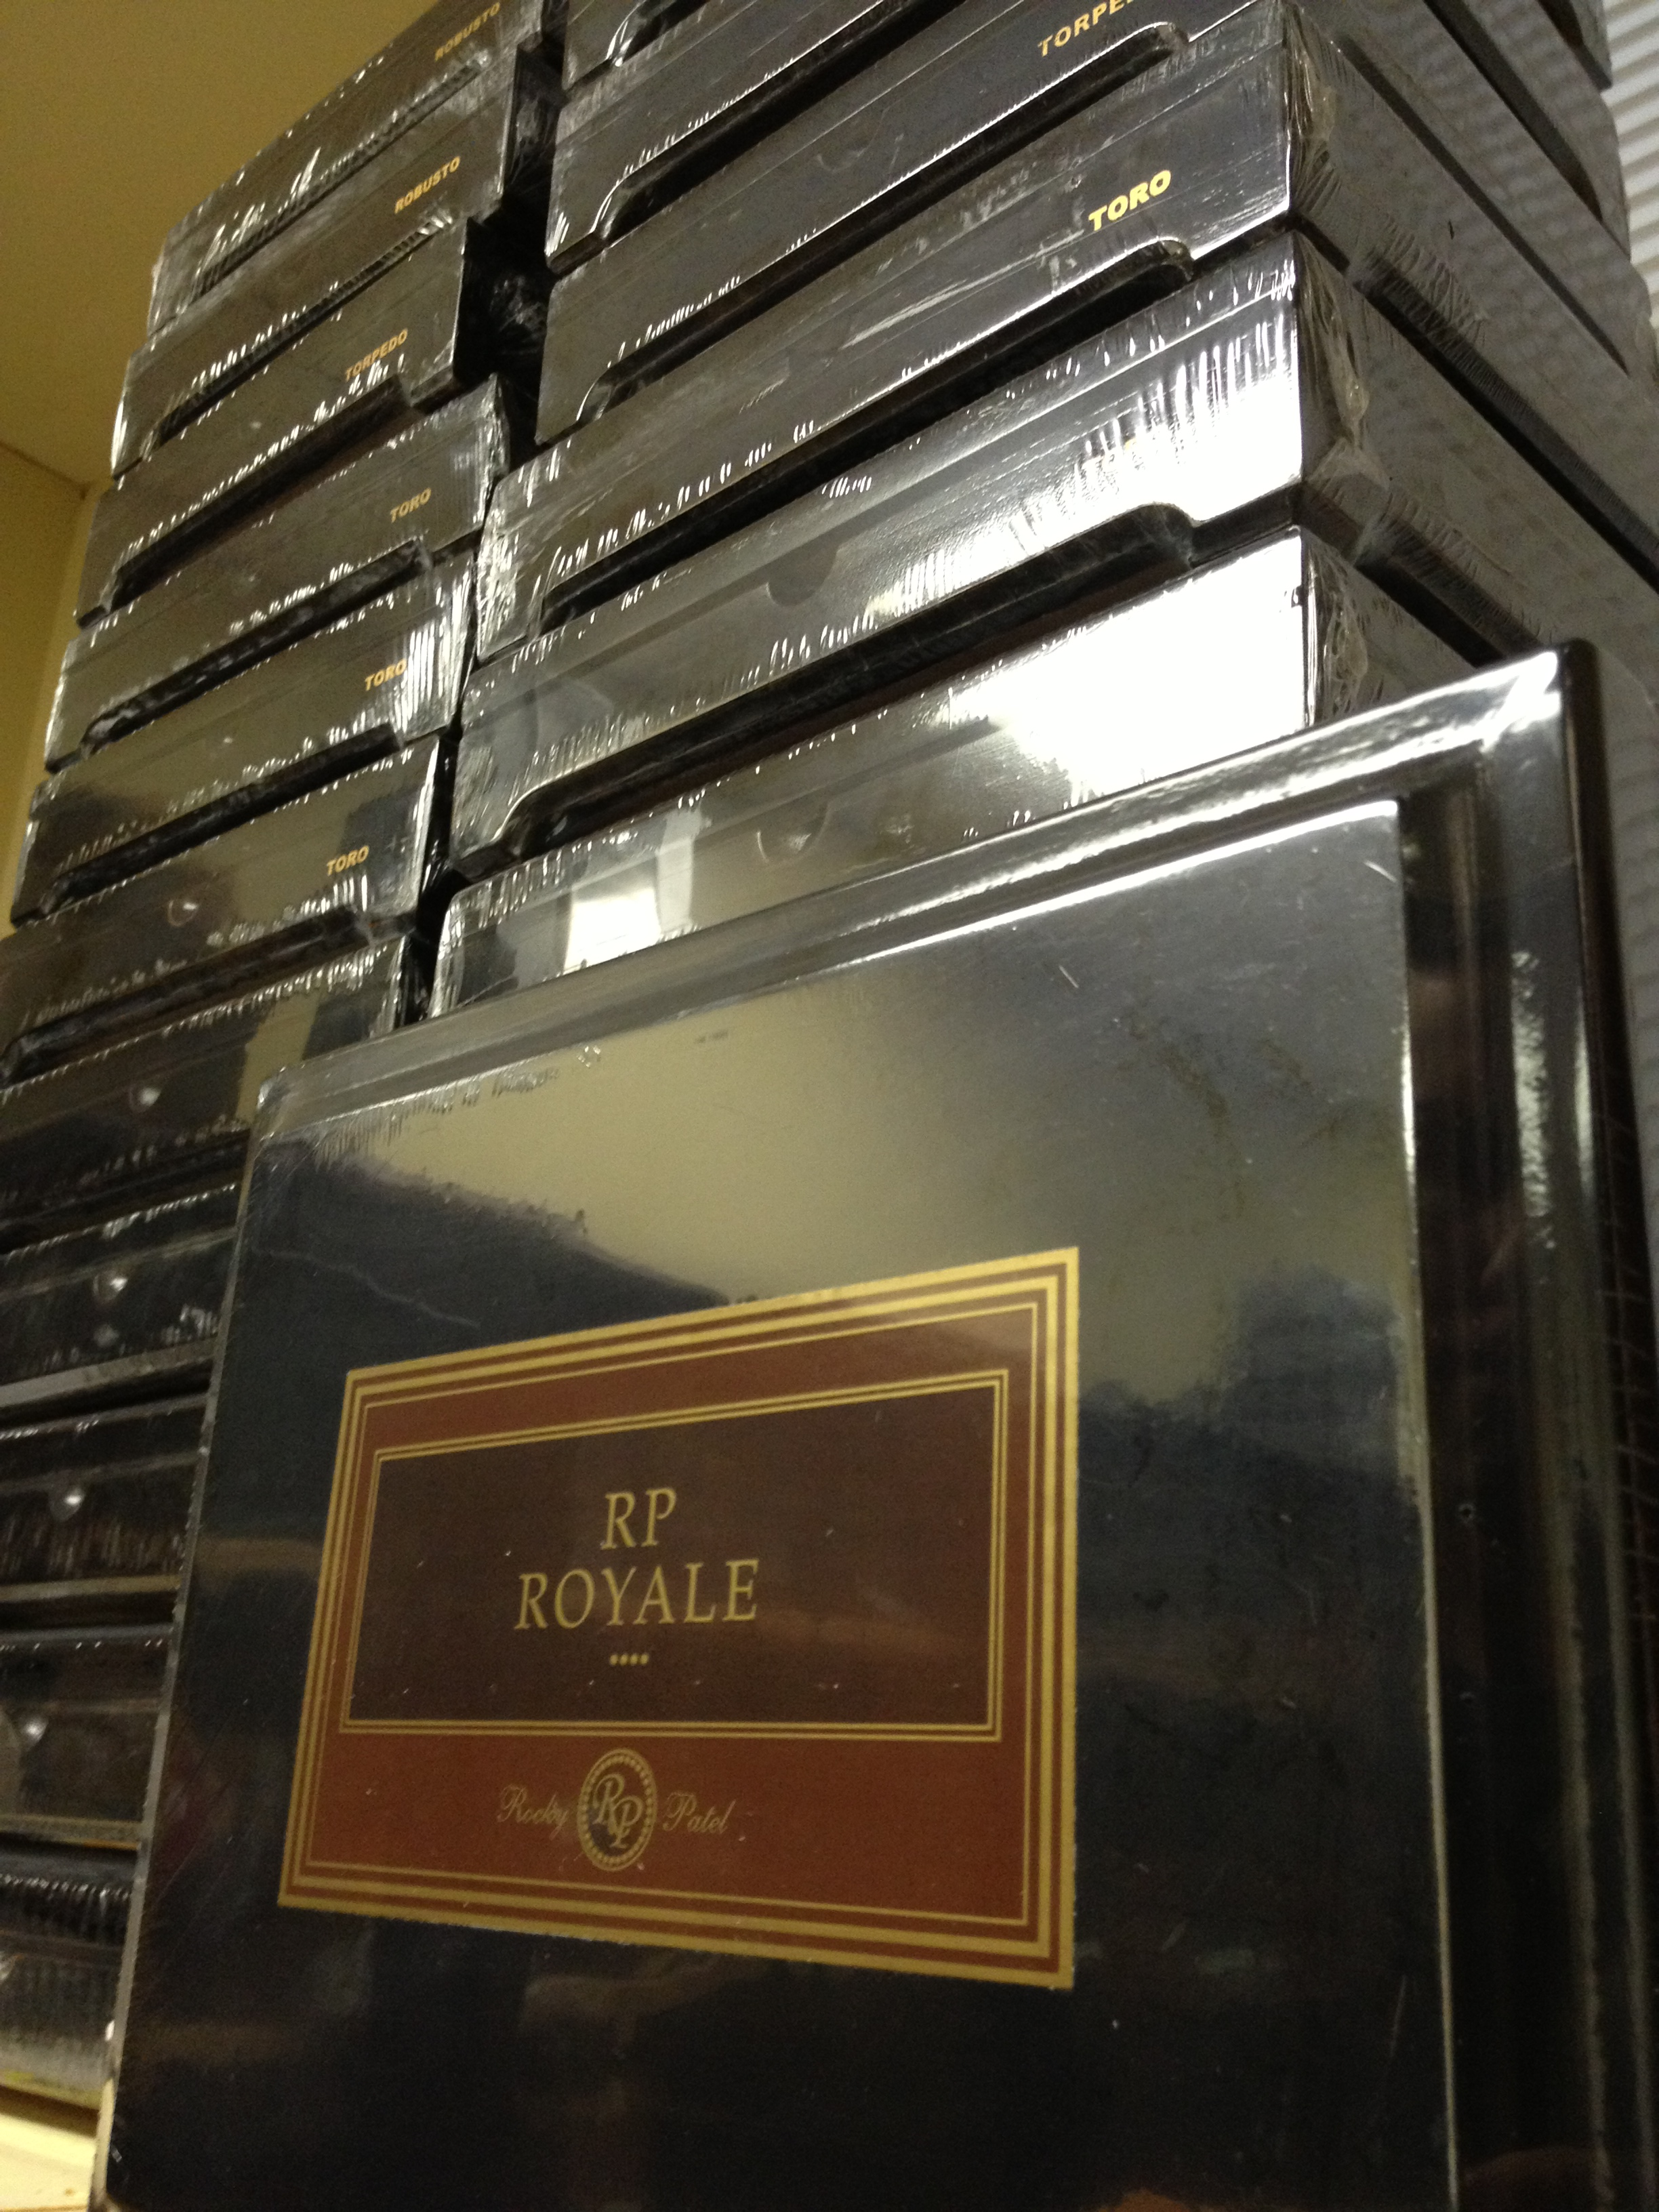 Rocky Patel Royale Robusto - Box of 20 image